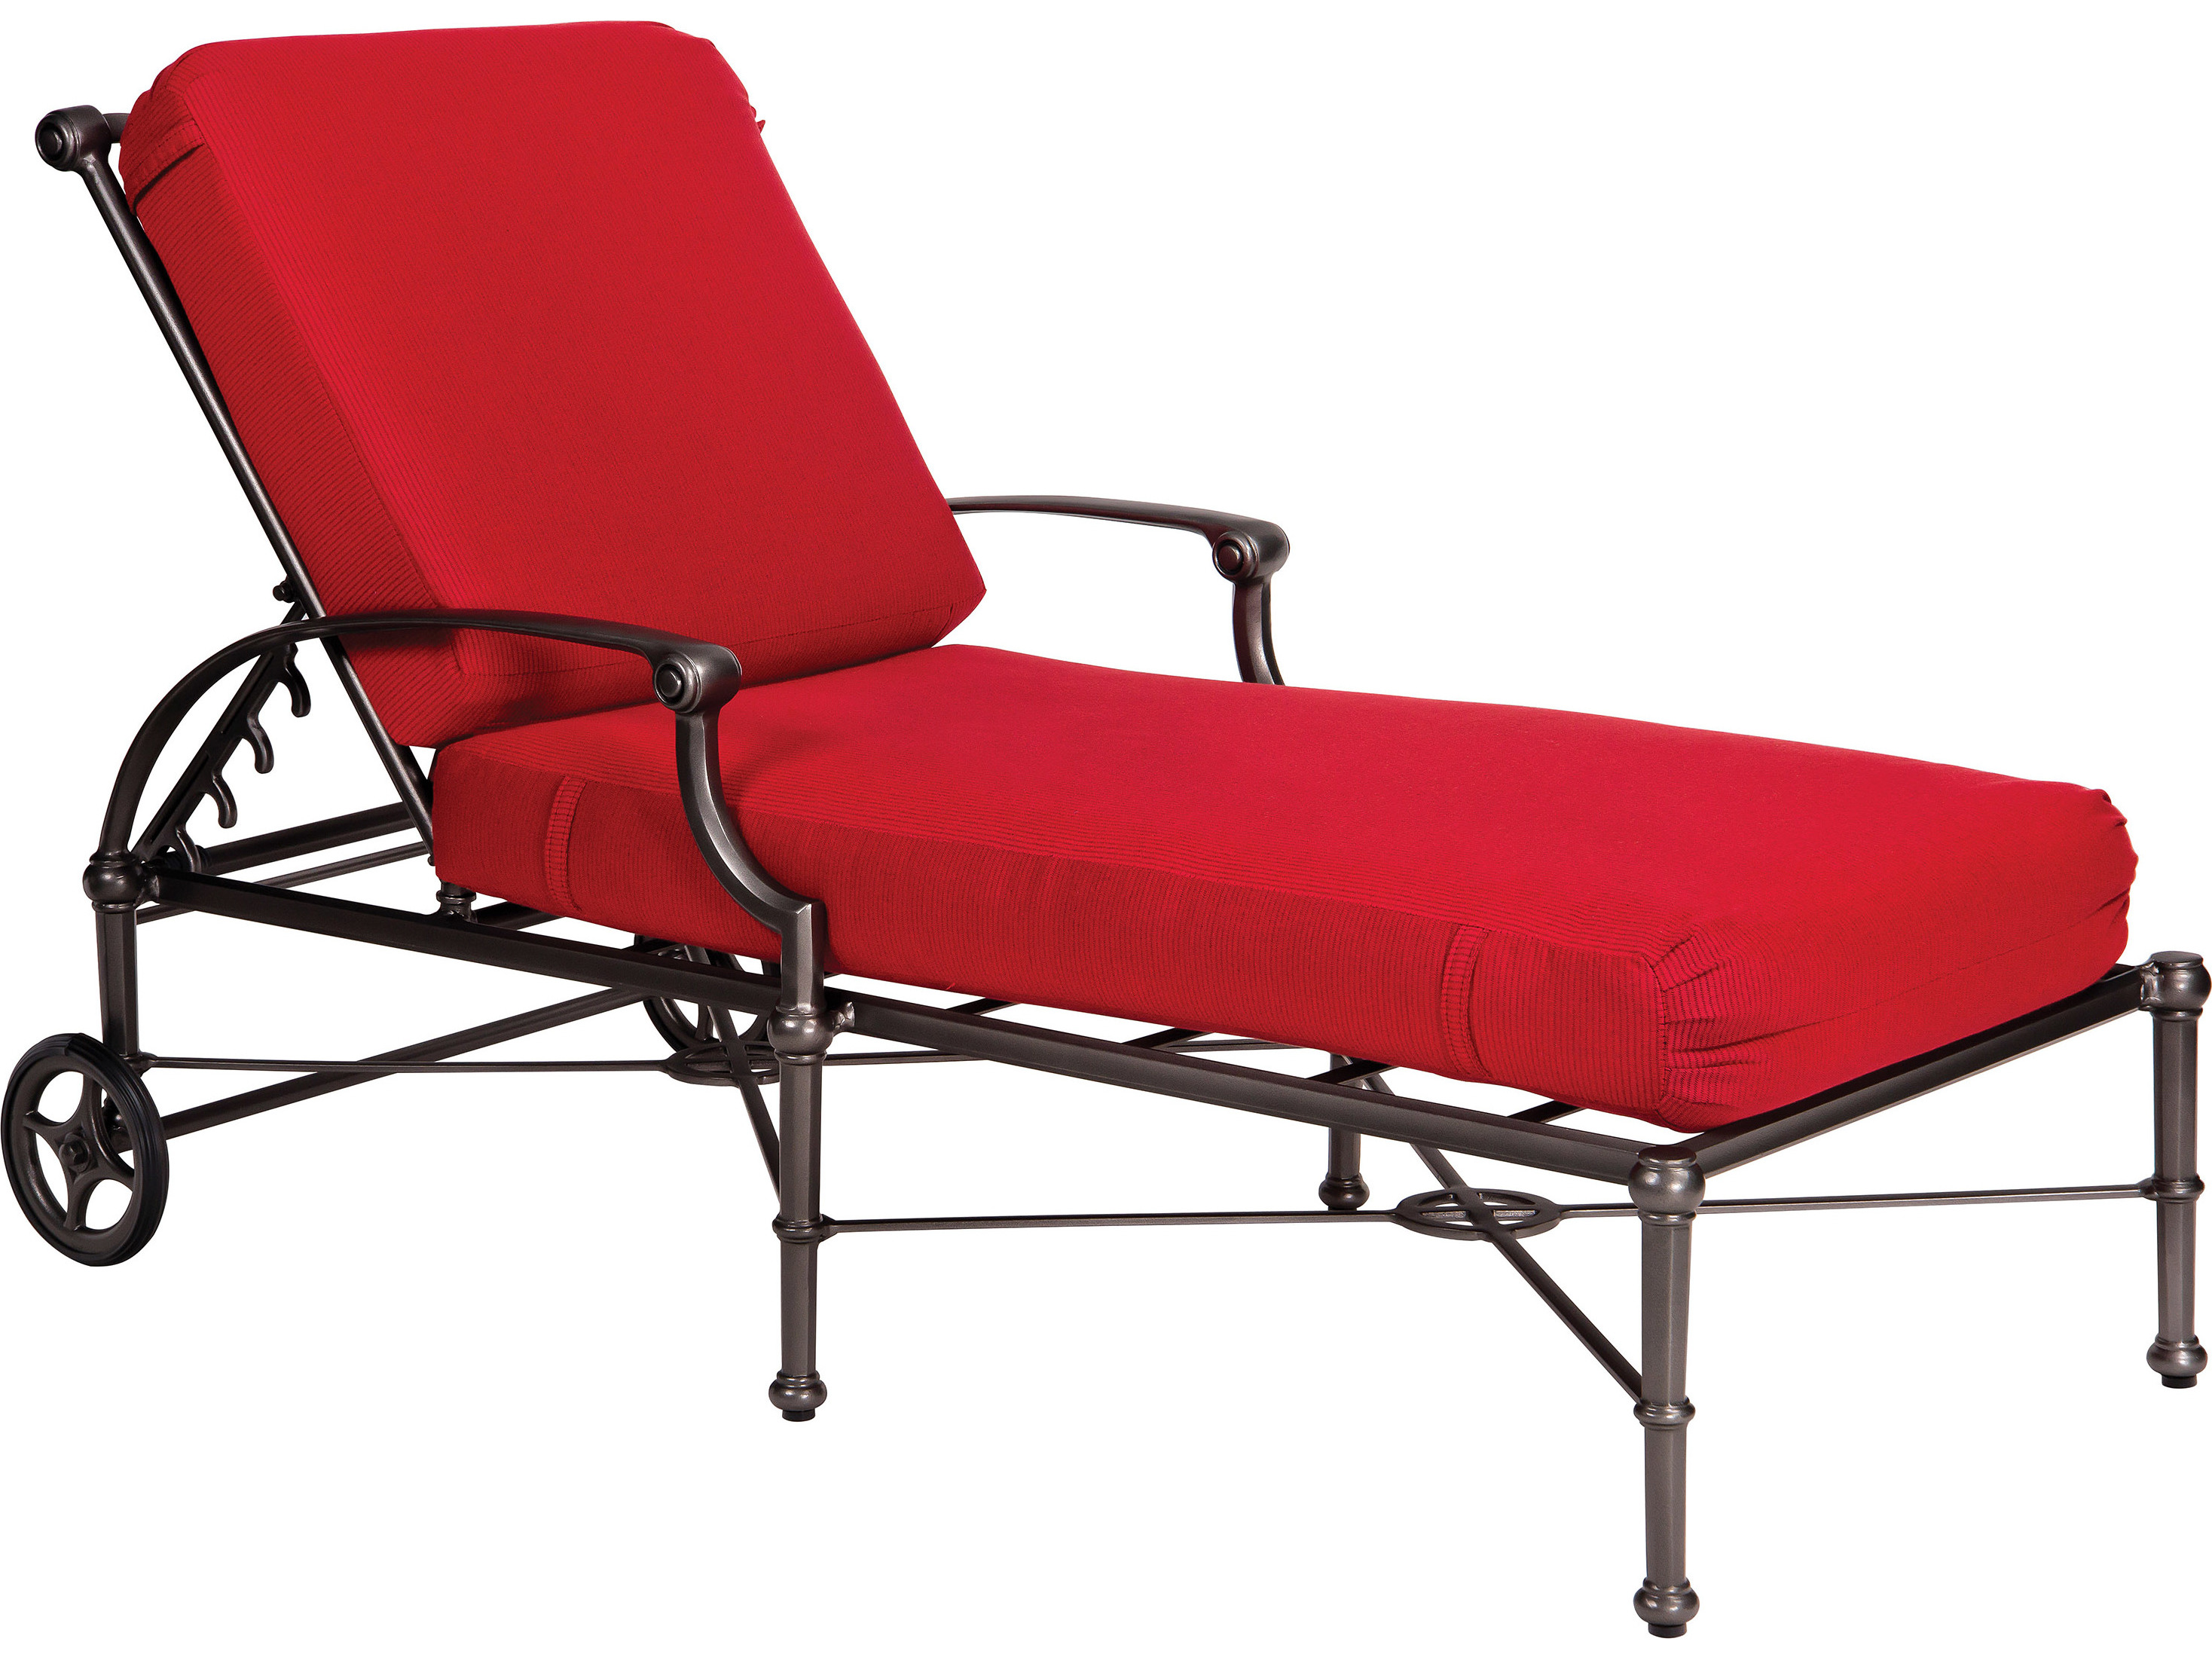 Woodard Delphi Chaise Lounge Replacement Cushions 850470ch